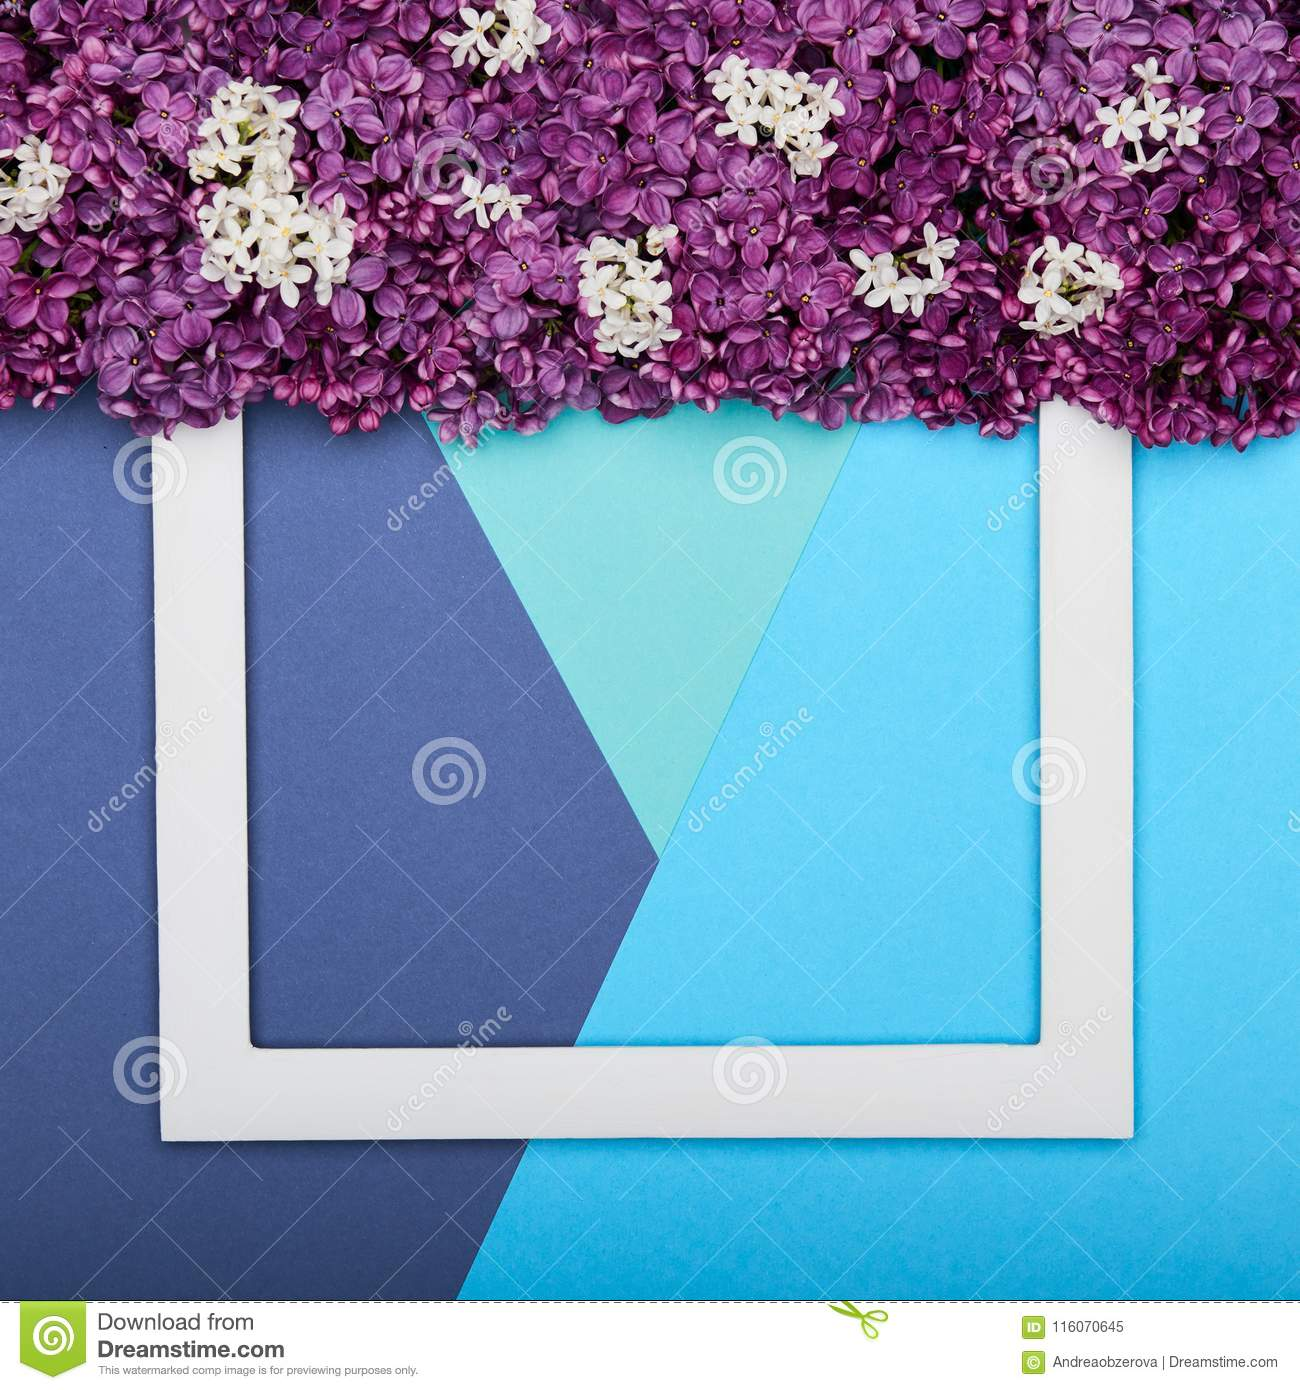 Happy Father`s day or Birthday Turquoise and Blue Colours Background. Floral flat lay minimalism greeting card.